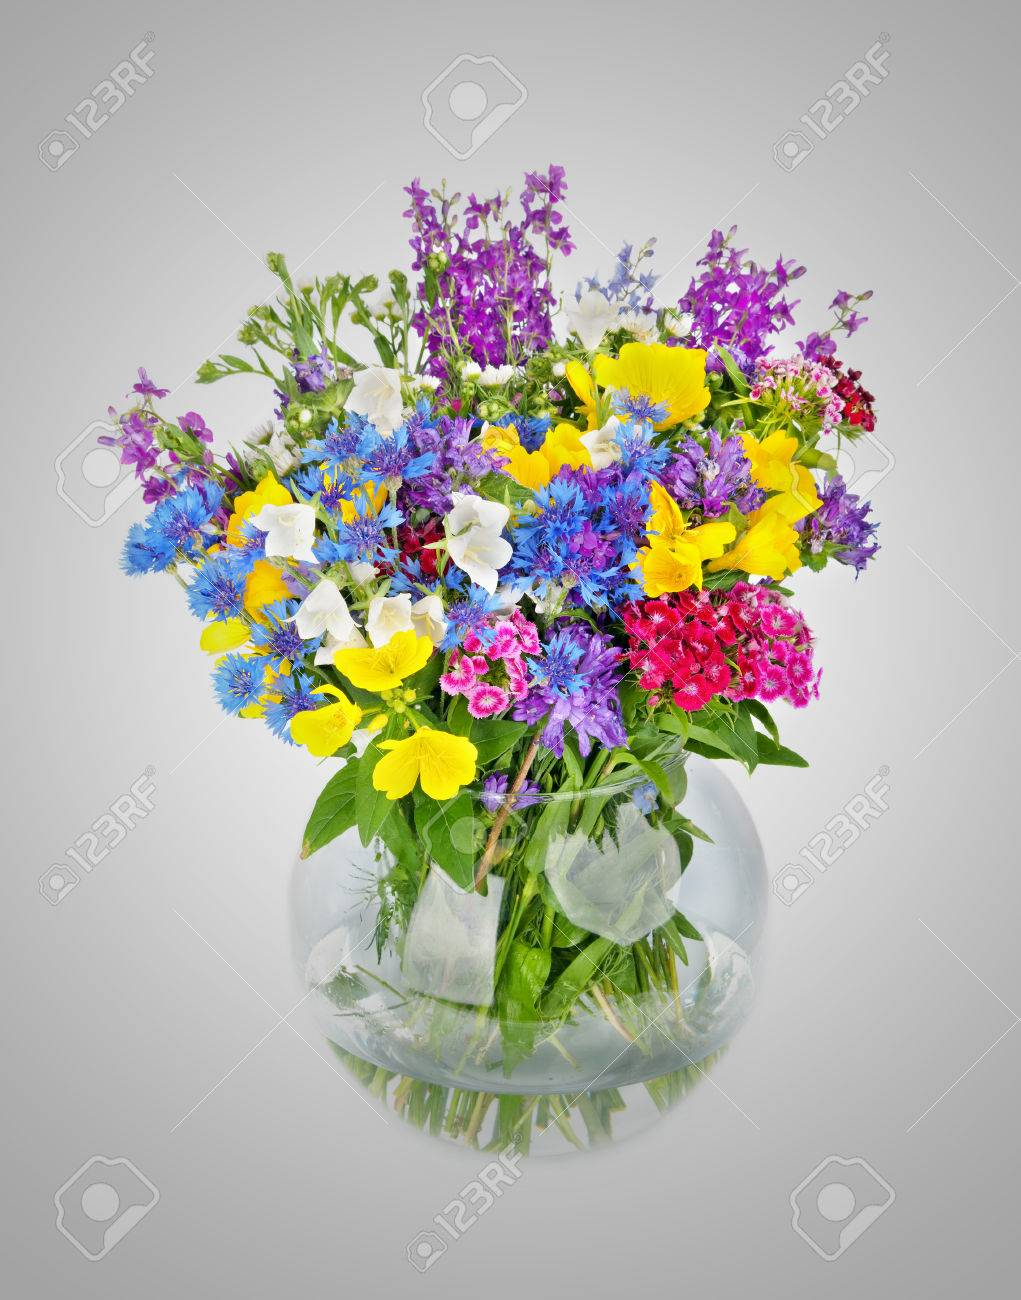 Beautiful wild flowers bouquet in vase beautiful wild flowers bouquet in vase 23769437 izmirmasajfo